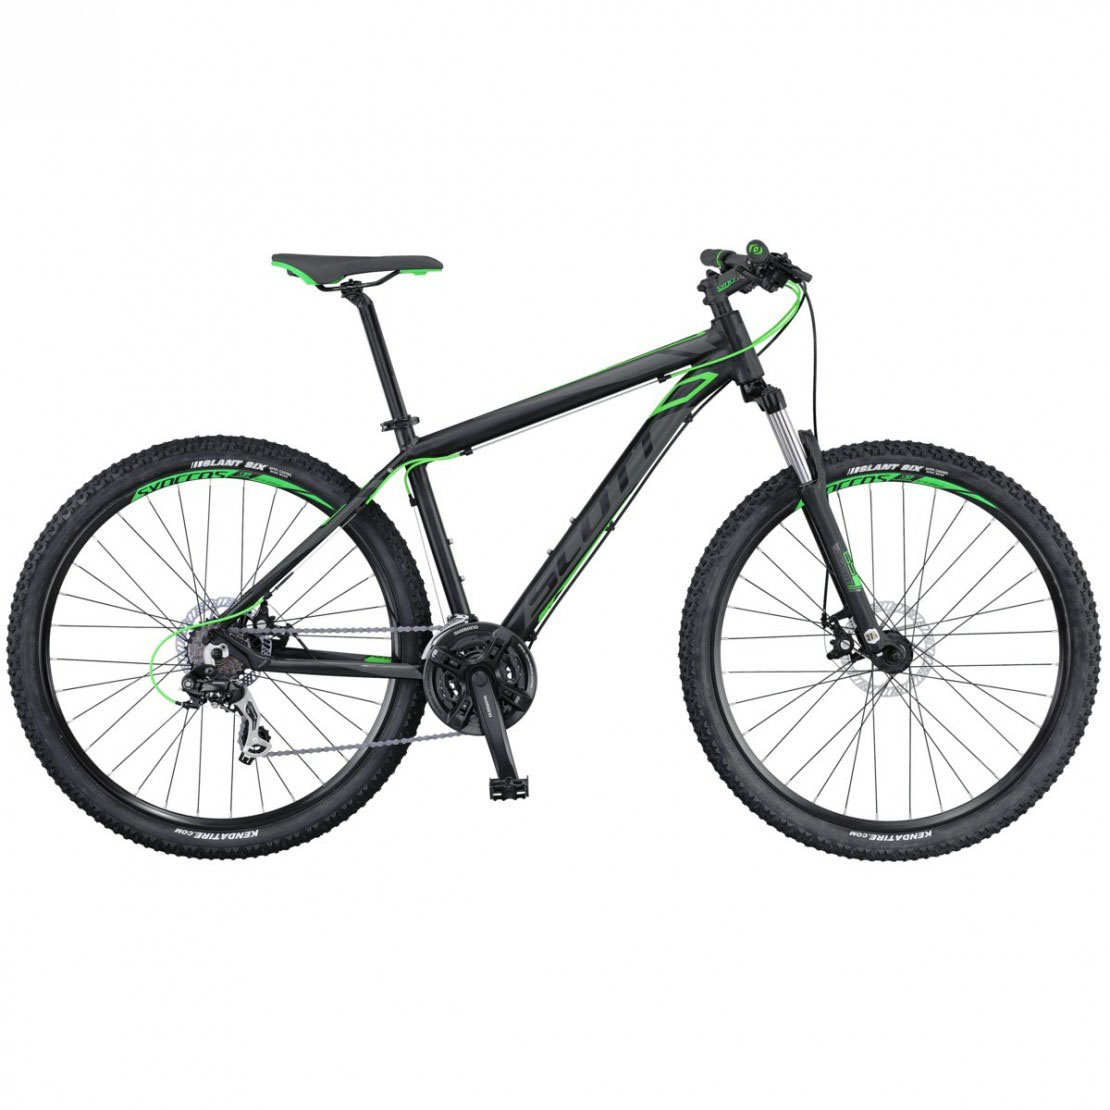 Aspect 970 2017 - 29er Mountain Bikes